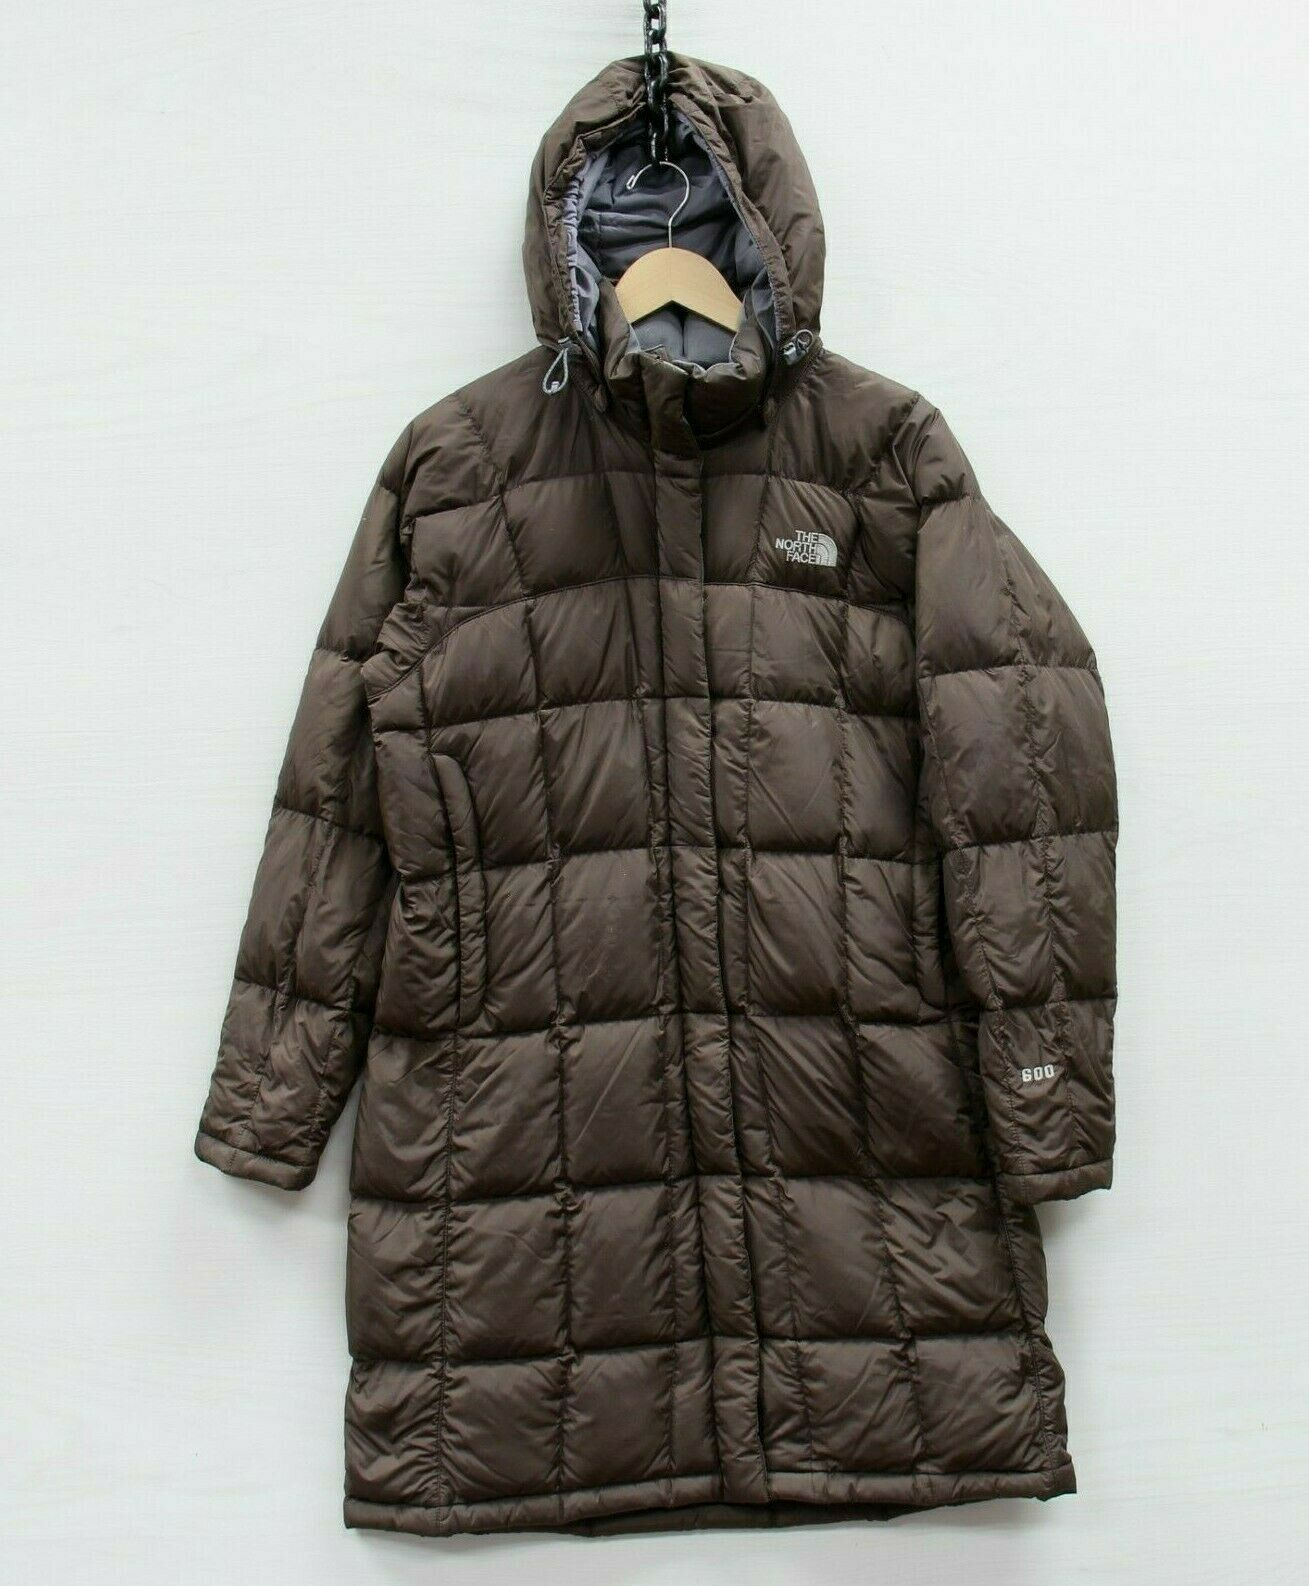 Vintage North Face Metropolis Parka Jacket Womens Size Medium 600 Down Insulated